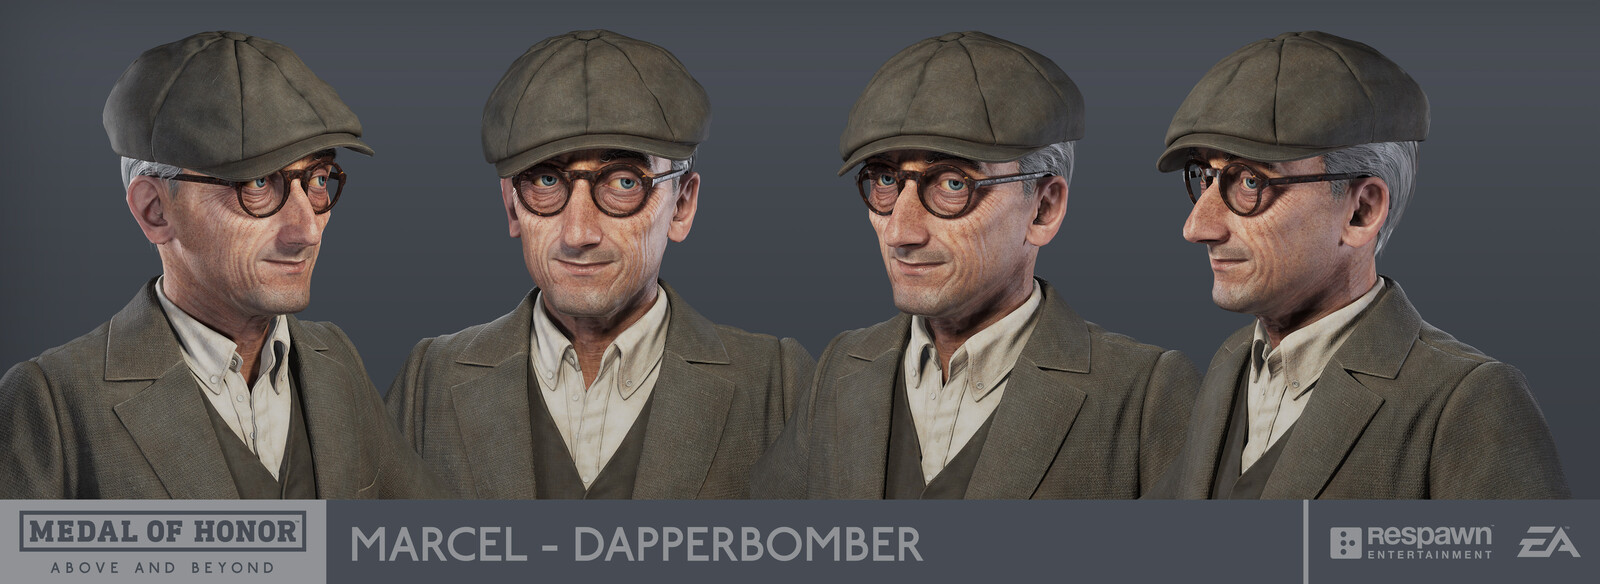 Medal of Honor : Above and Beyond - Marcel the Dapperbomber